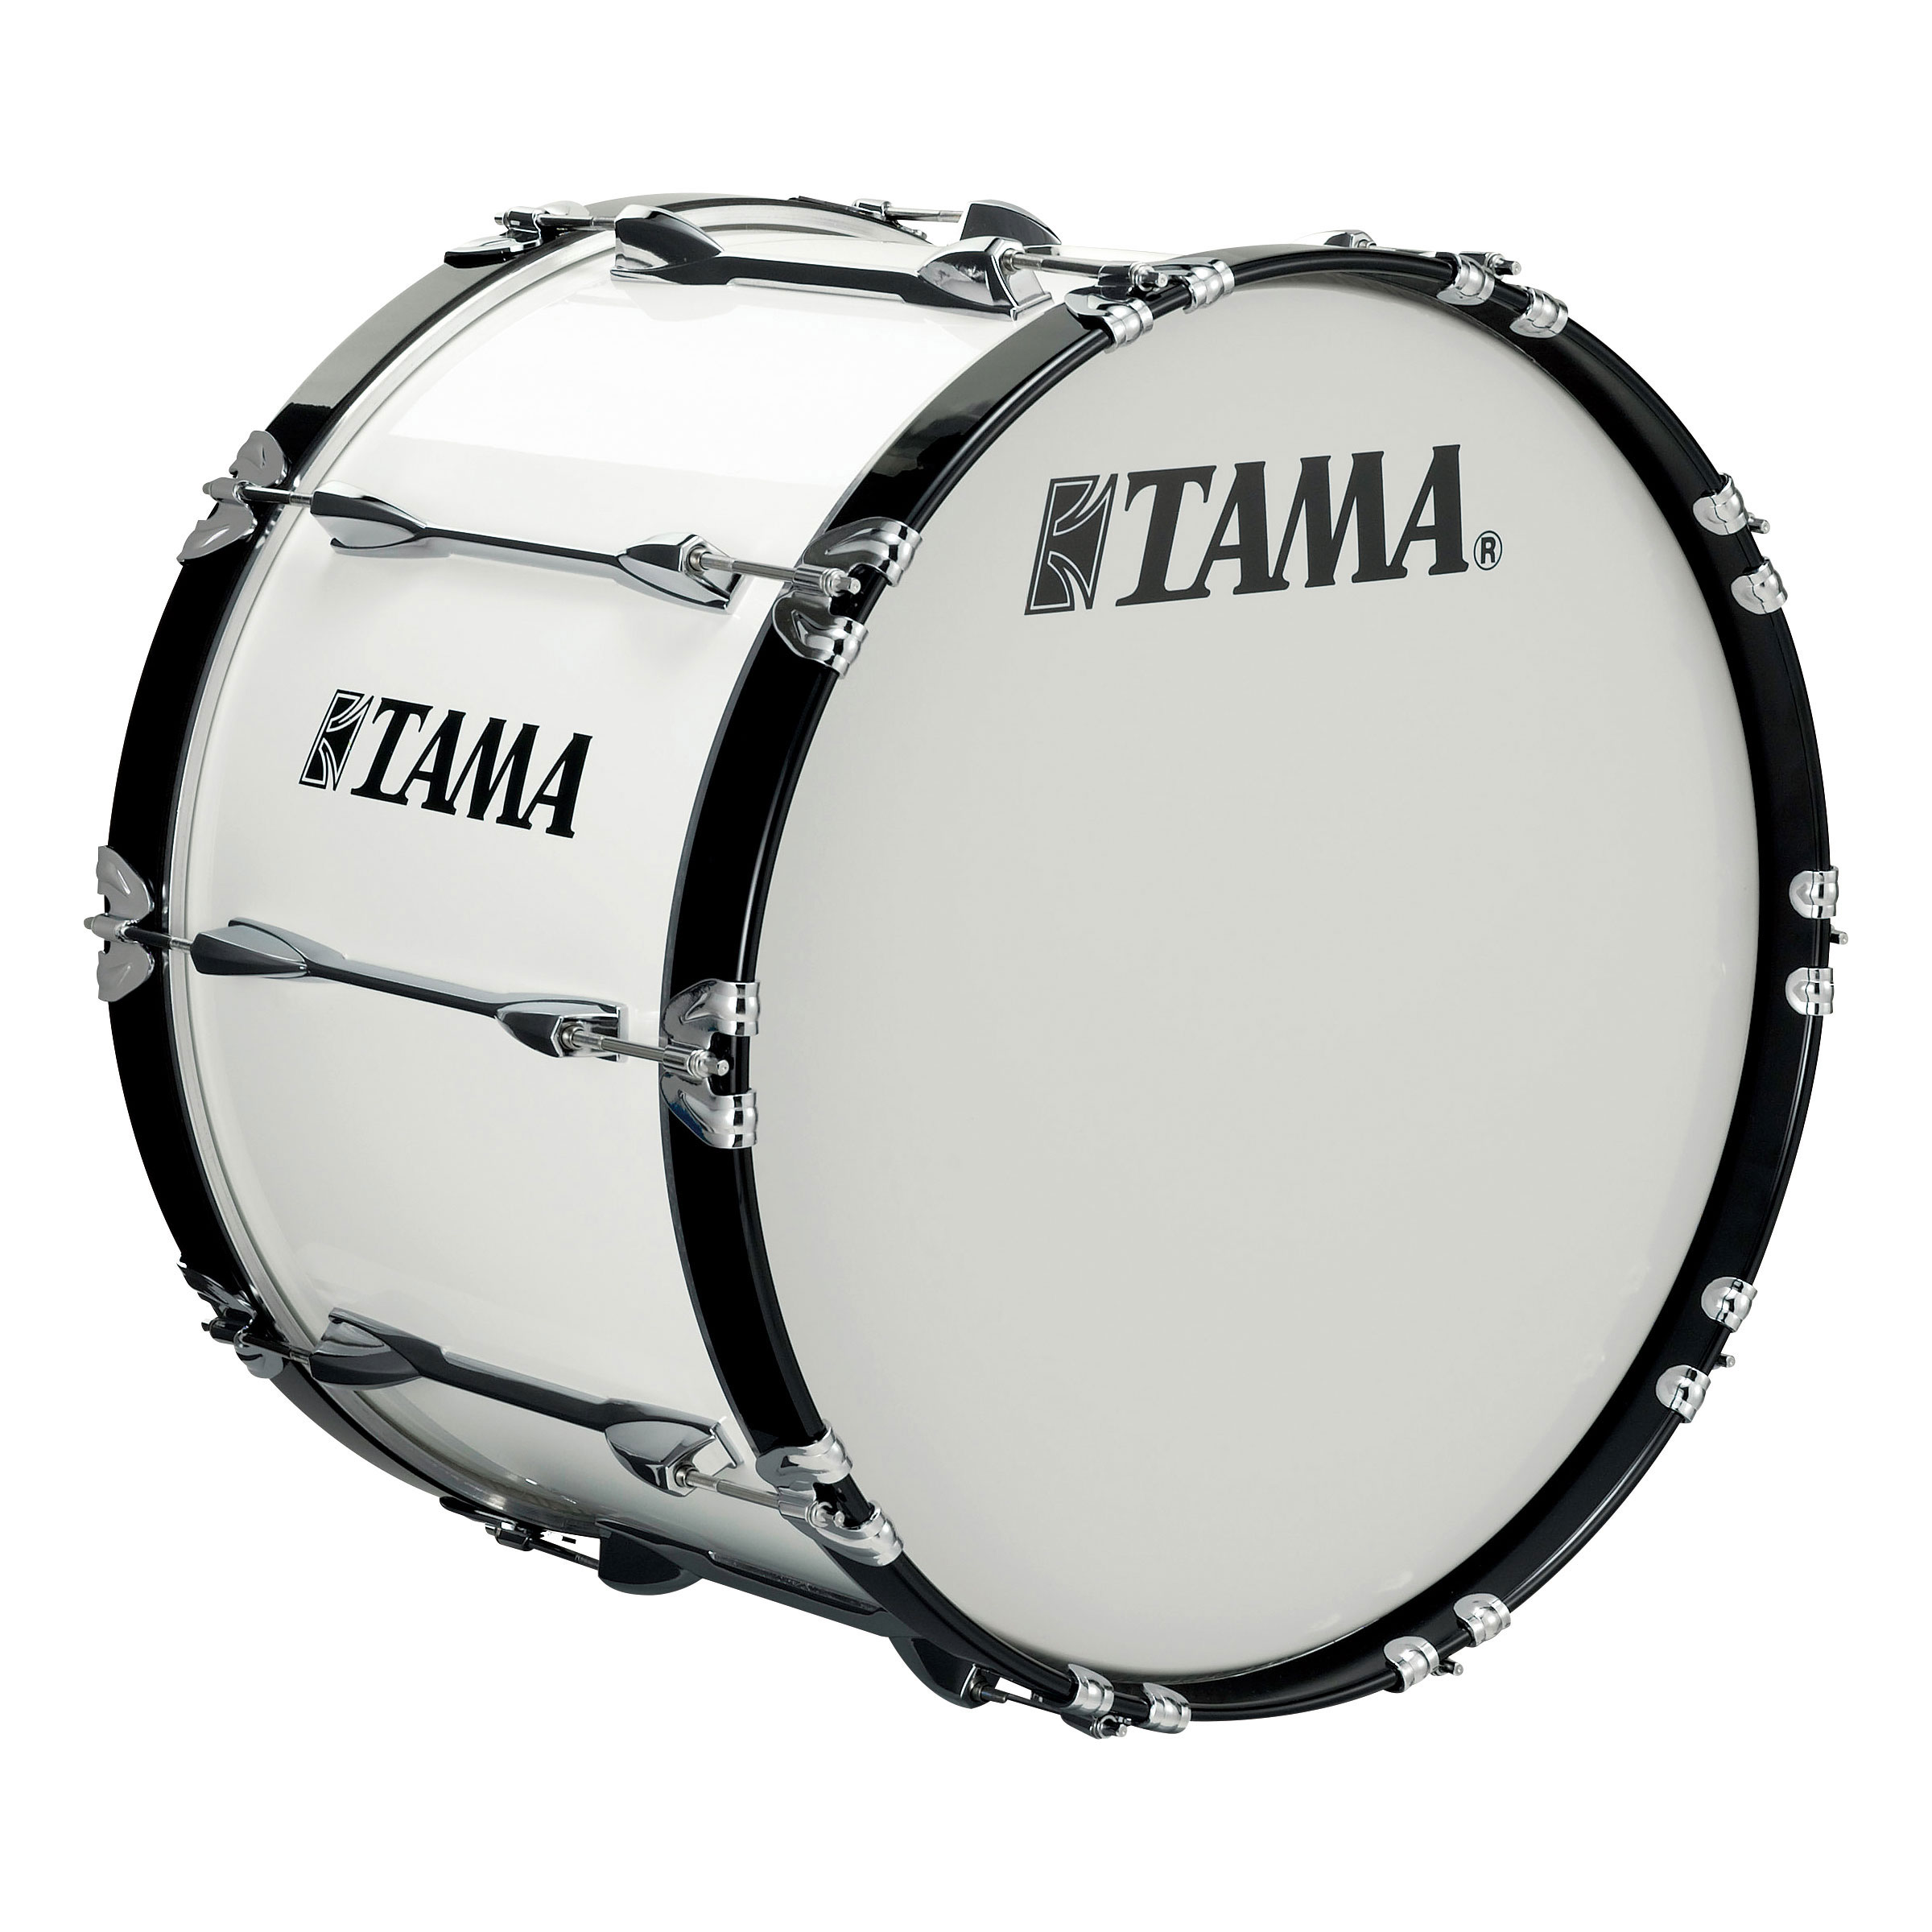 "Tama 18"" StarLight Marching Bass Drum in Sugar White Wrap"